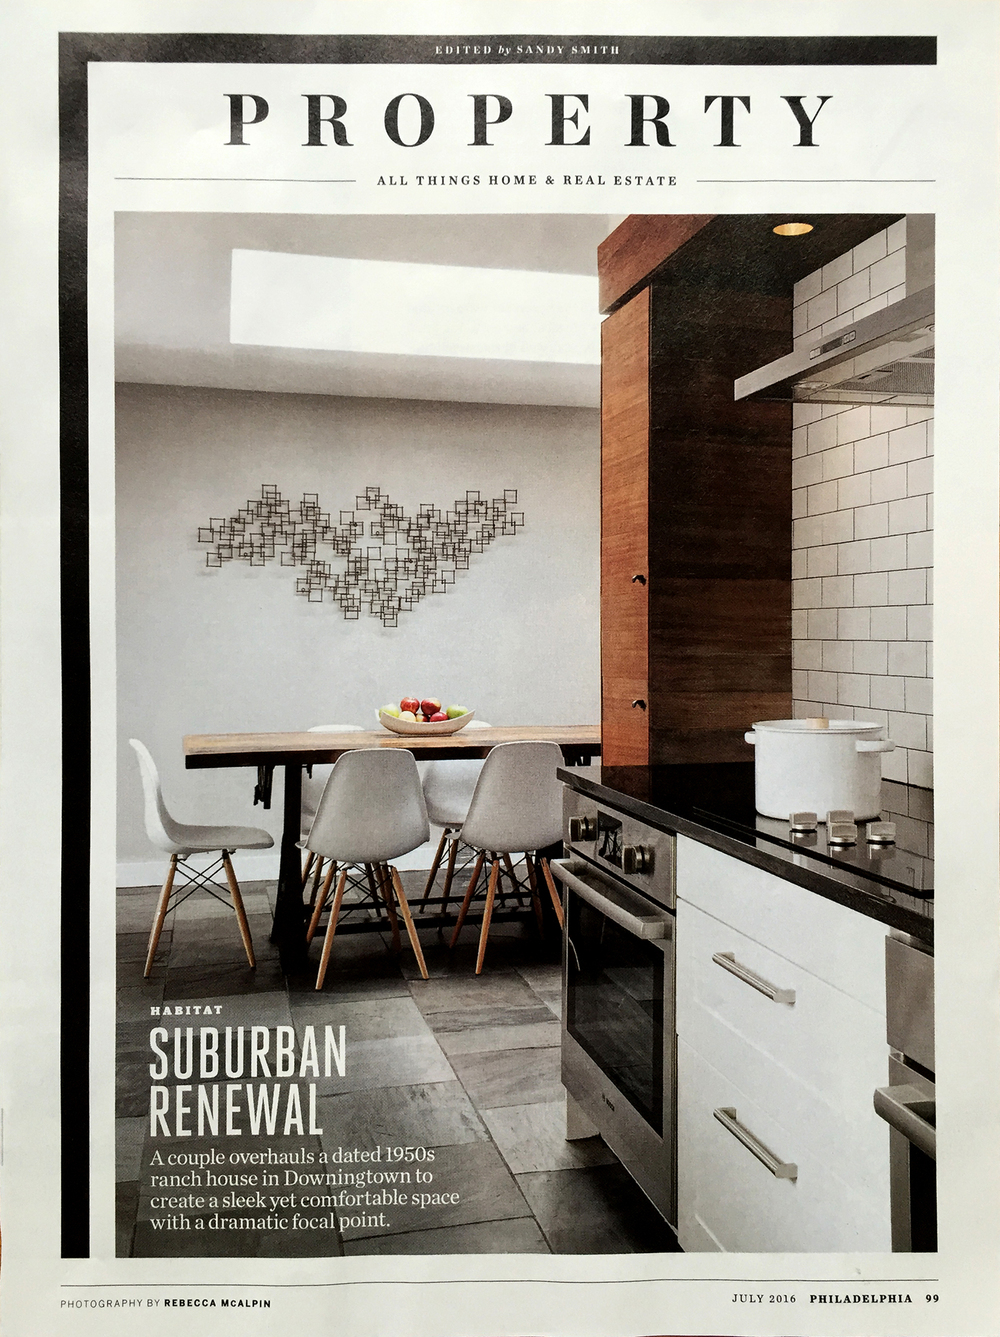 PAK-HUFFMAN RESIDENCE featured in Philadelphia Magazine